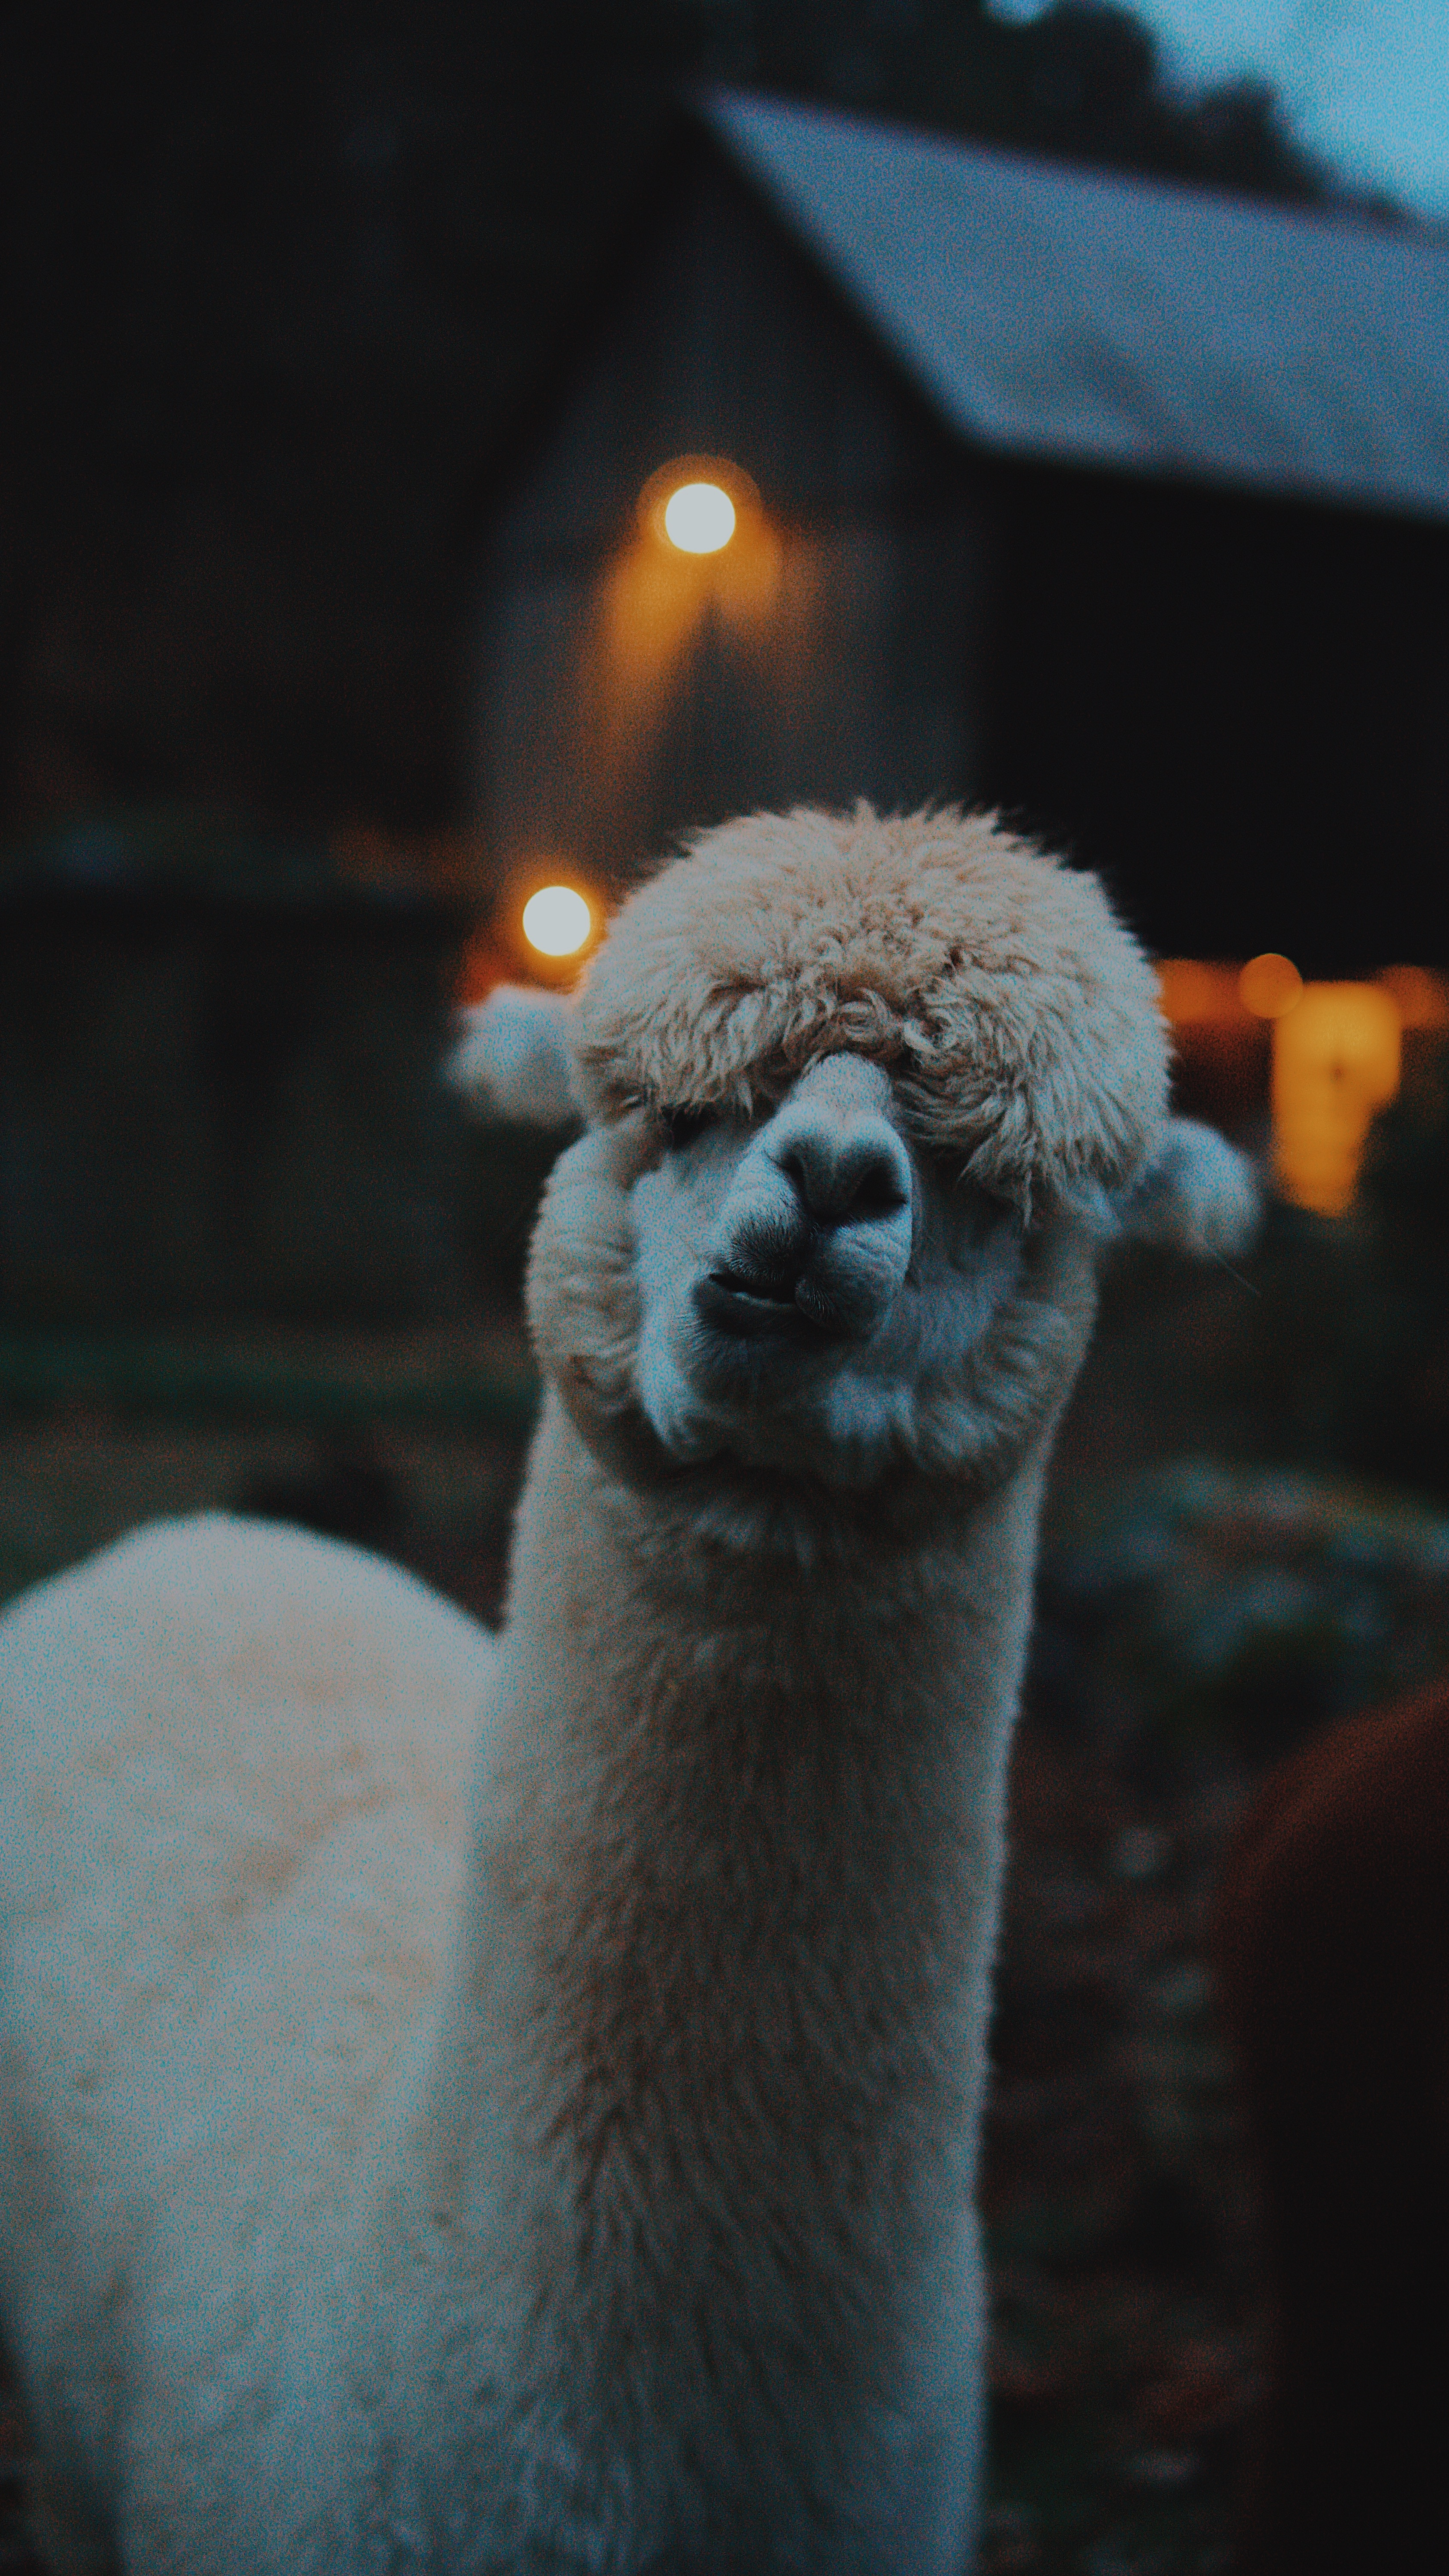 135740 Screensavers and Wallpapers Emotions for phone. Download Funny, Animals, Emotions, Llama, Lama, Camel pictures for free